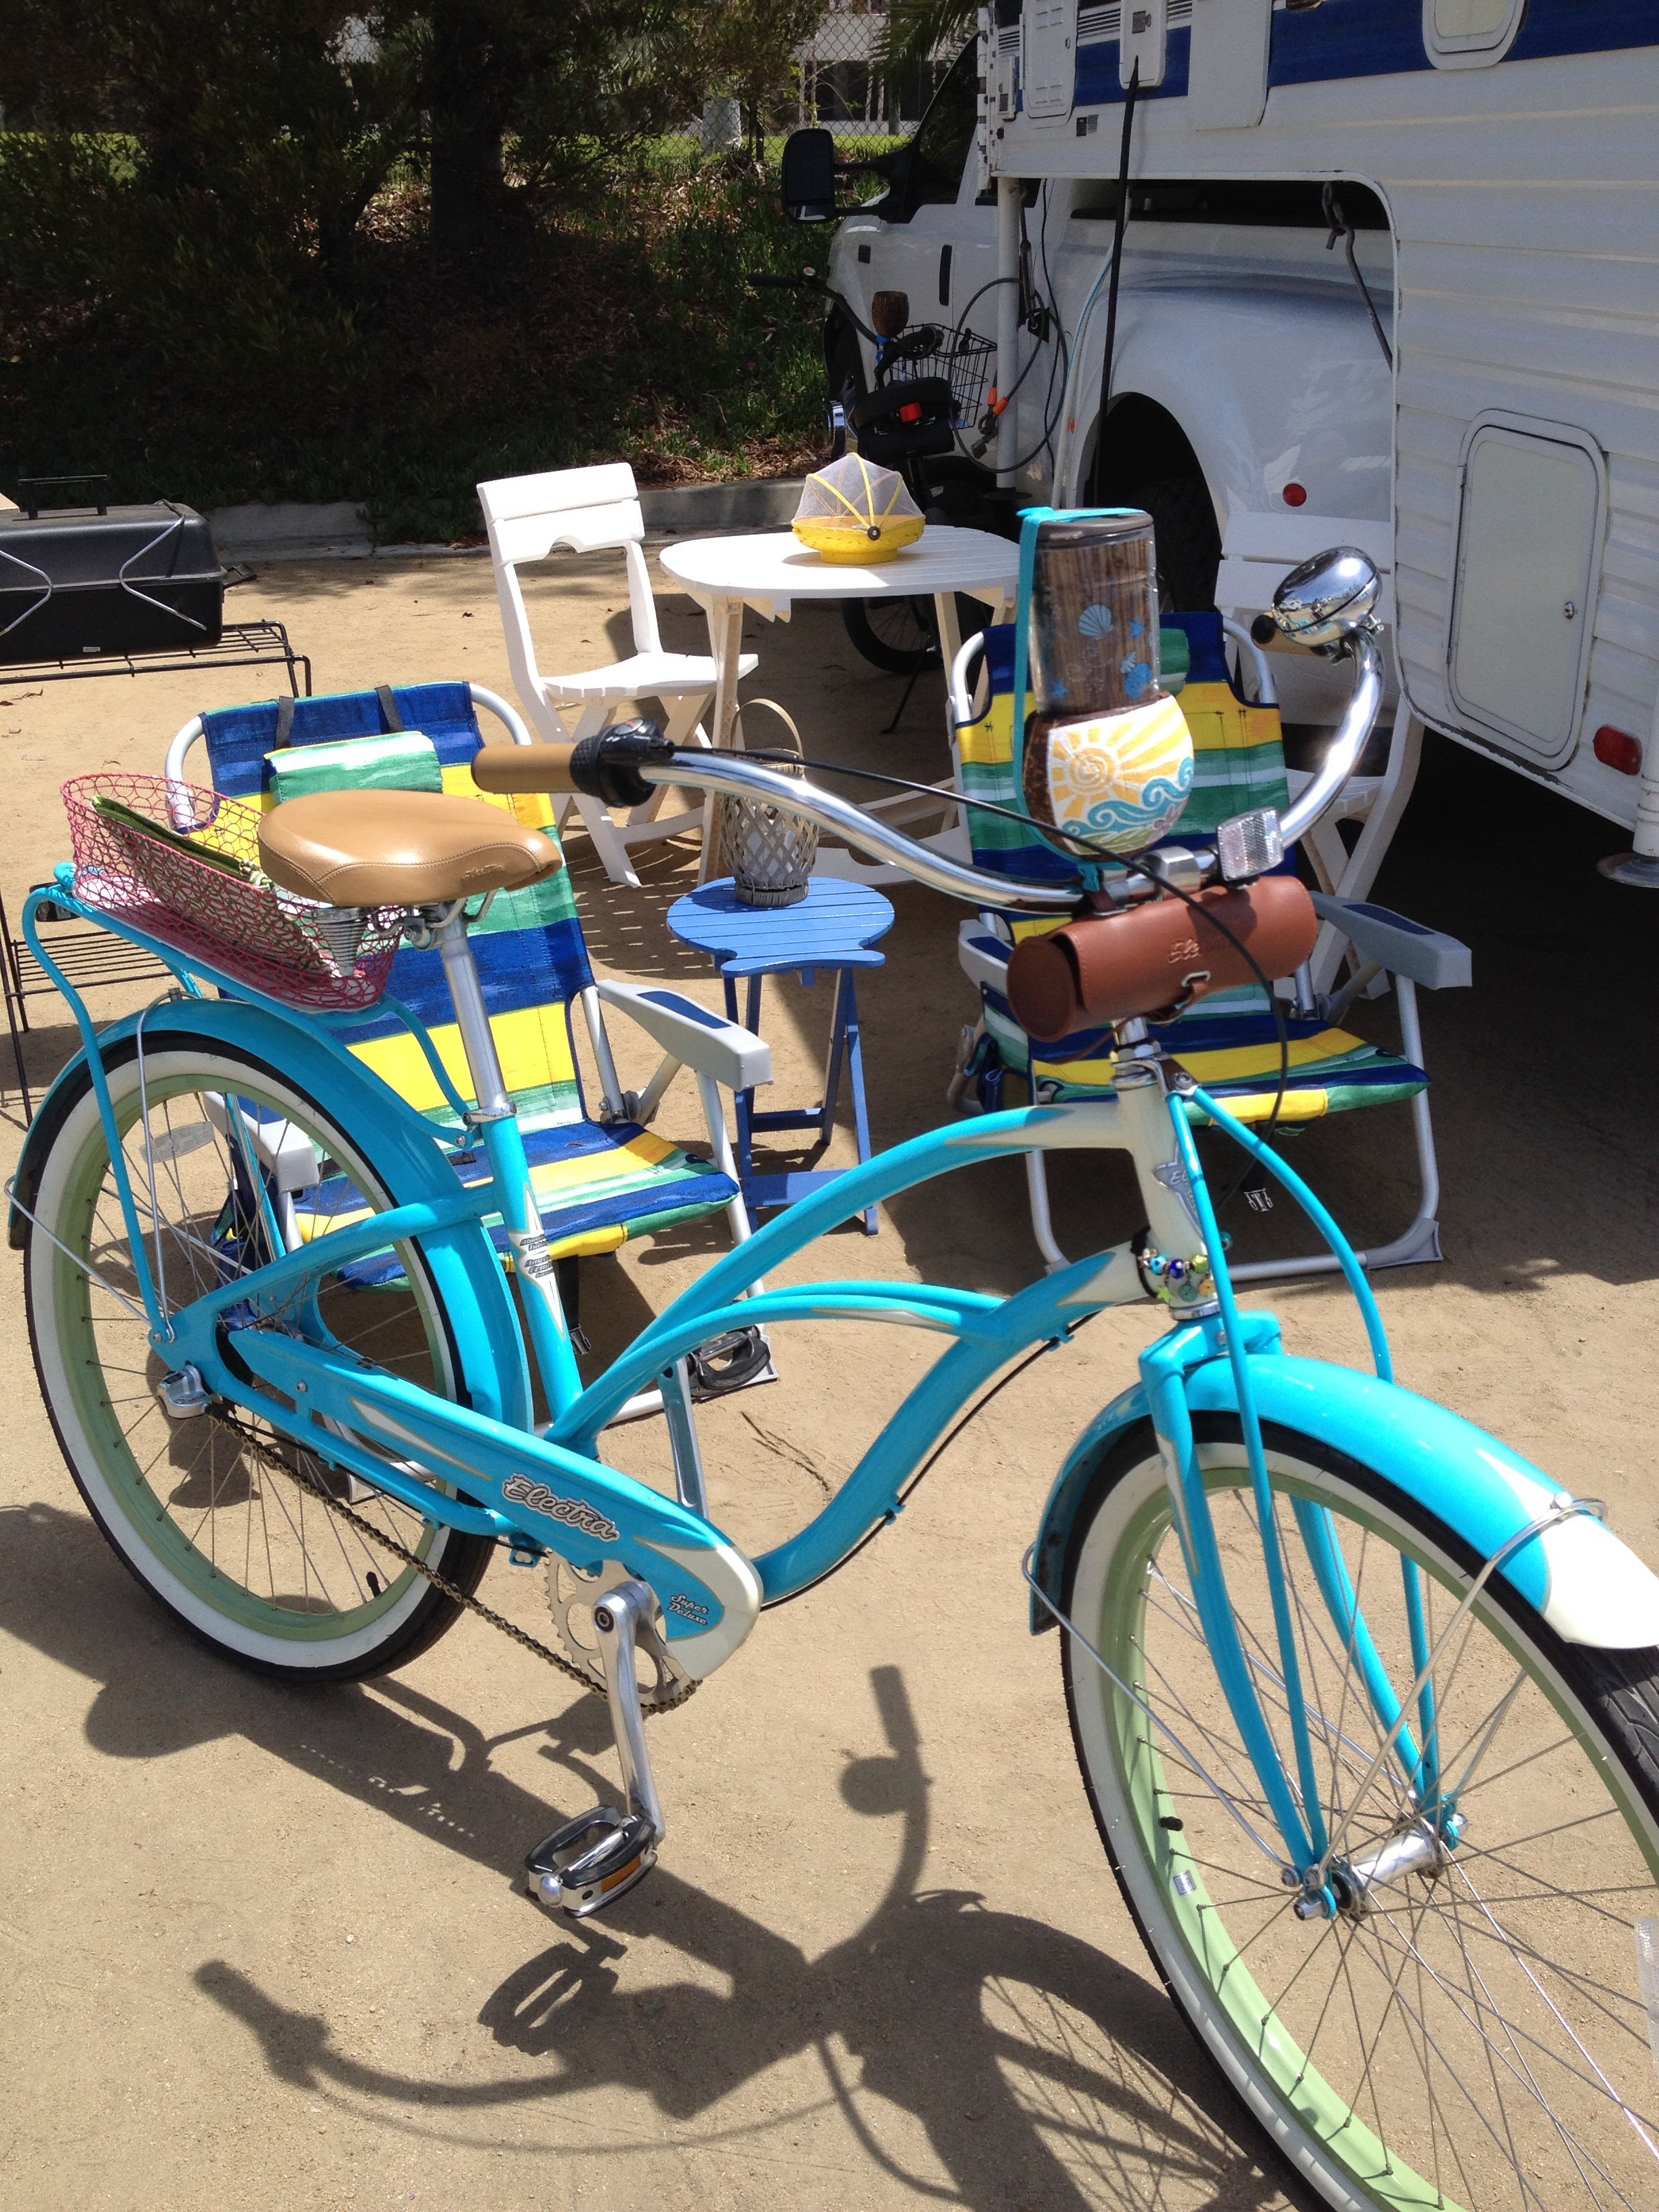 Golden Shore Rv Resort Is Conveniently Located On The Waterfront In Downtown Long Beach Rode My Electra Beach Cr Beach Cruiser Bicycle Cruiser Bike Beach Bike